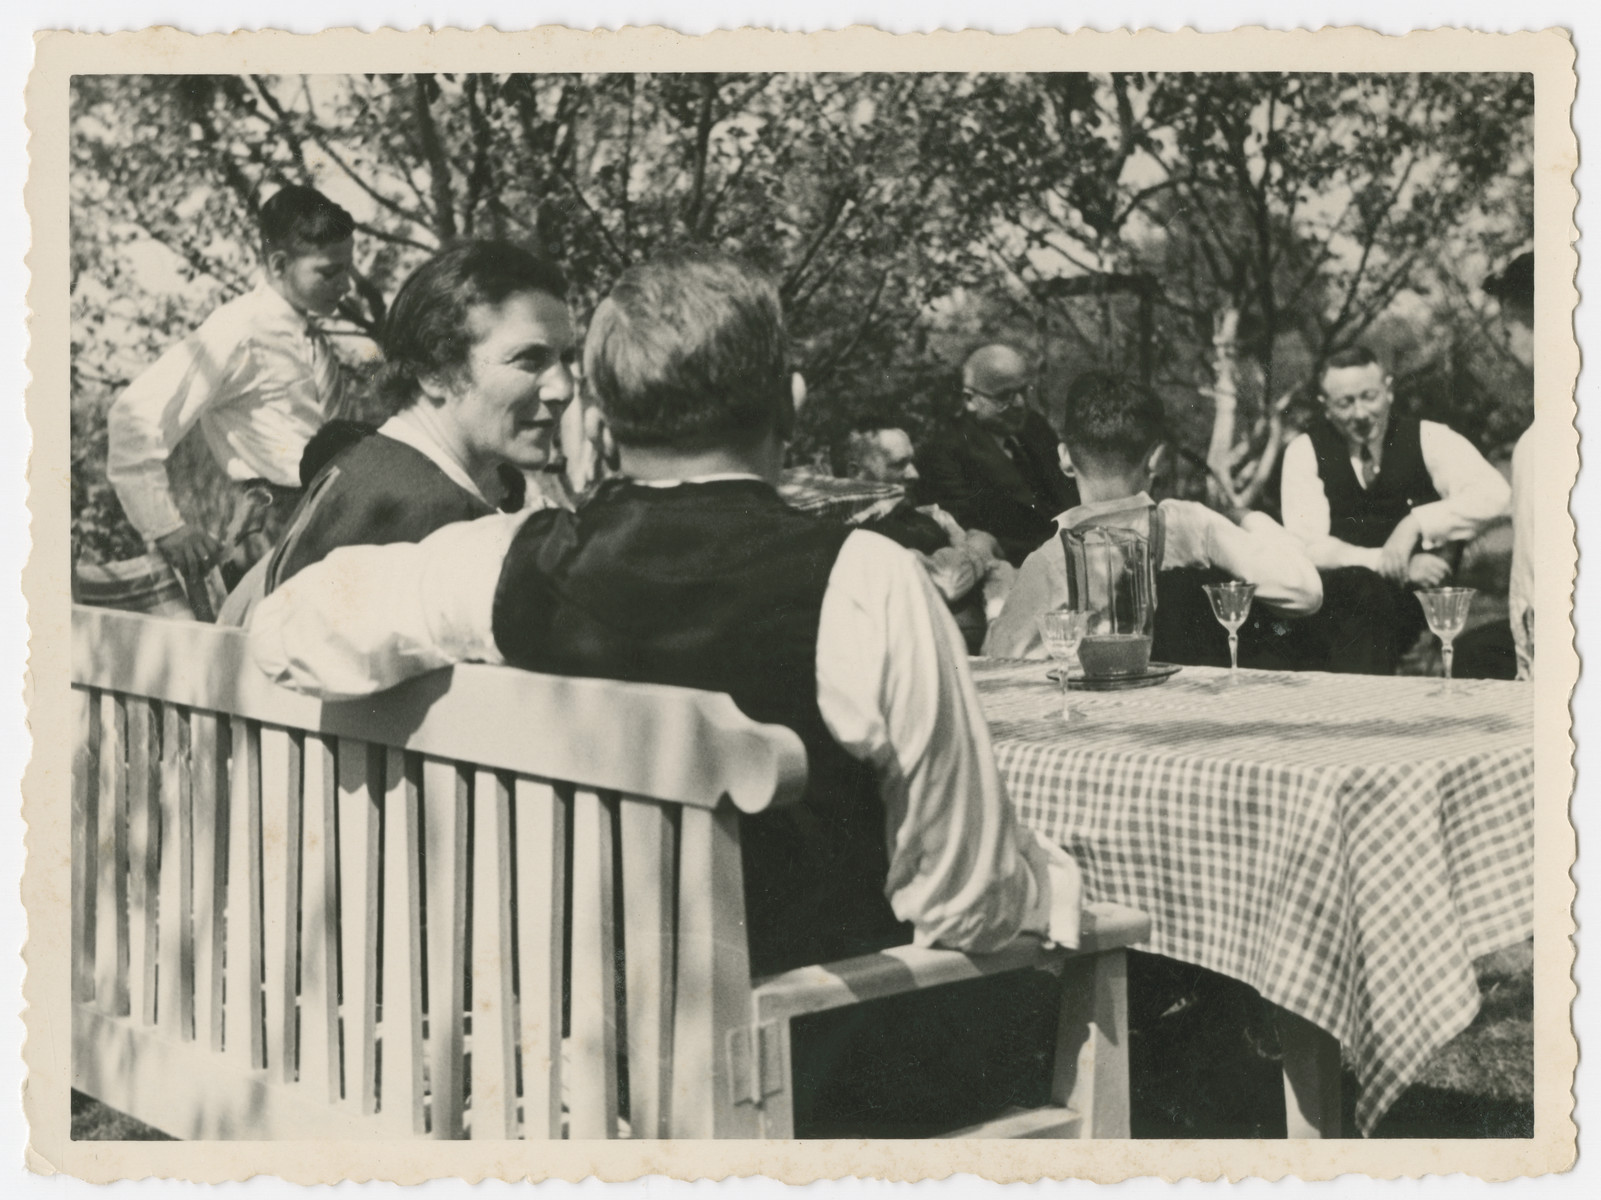 A multi-generational German-Jewish family enjoys a meal outdoors.  Mortiz and Else Gans are pictured on the left with their backs to the camera.  Carl Gans is standing on the far left and Leo Lamm is pictured in he back in the dark suit.  The man to the right of Leo is ,probably his brother Sally.